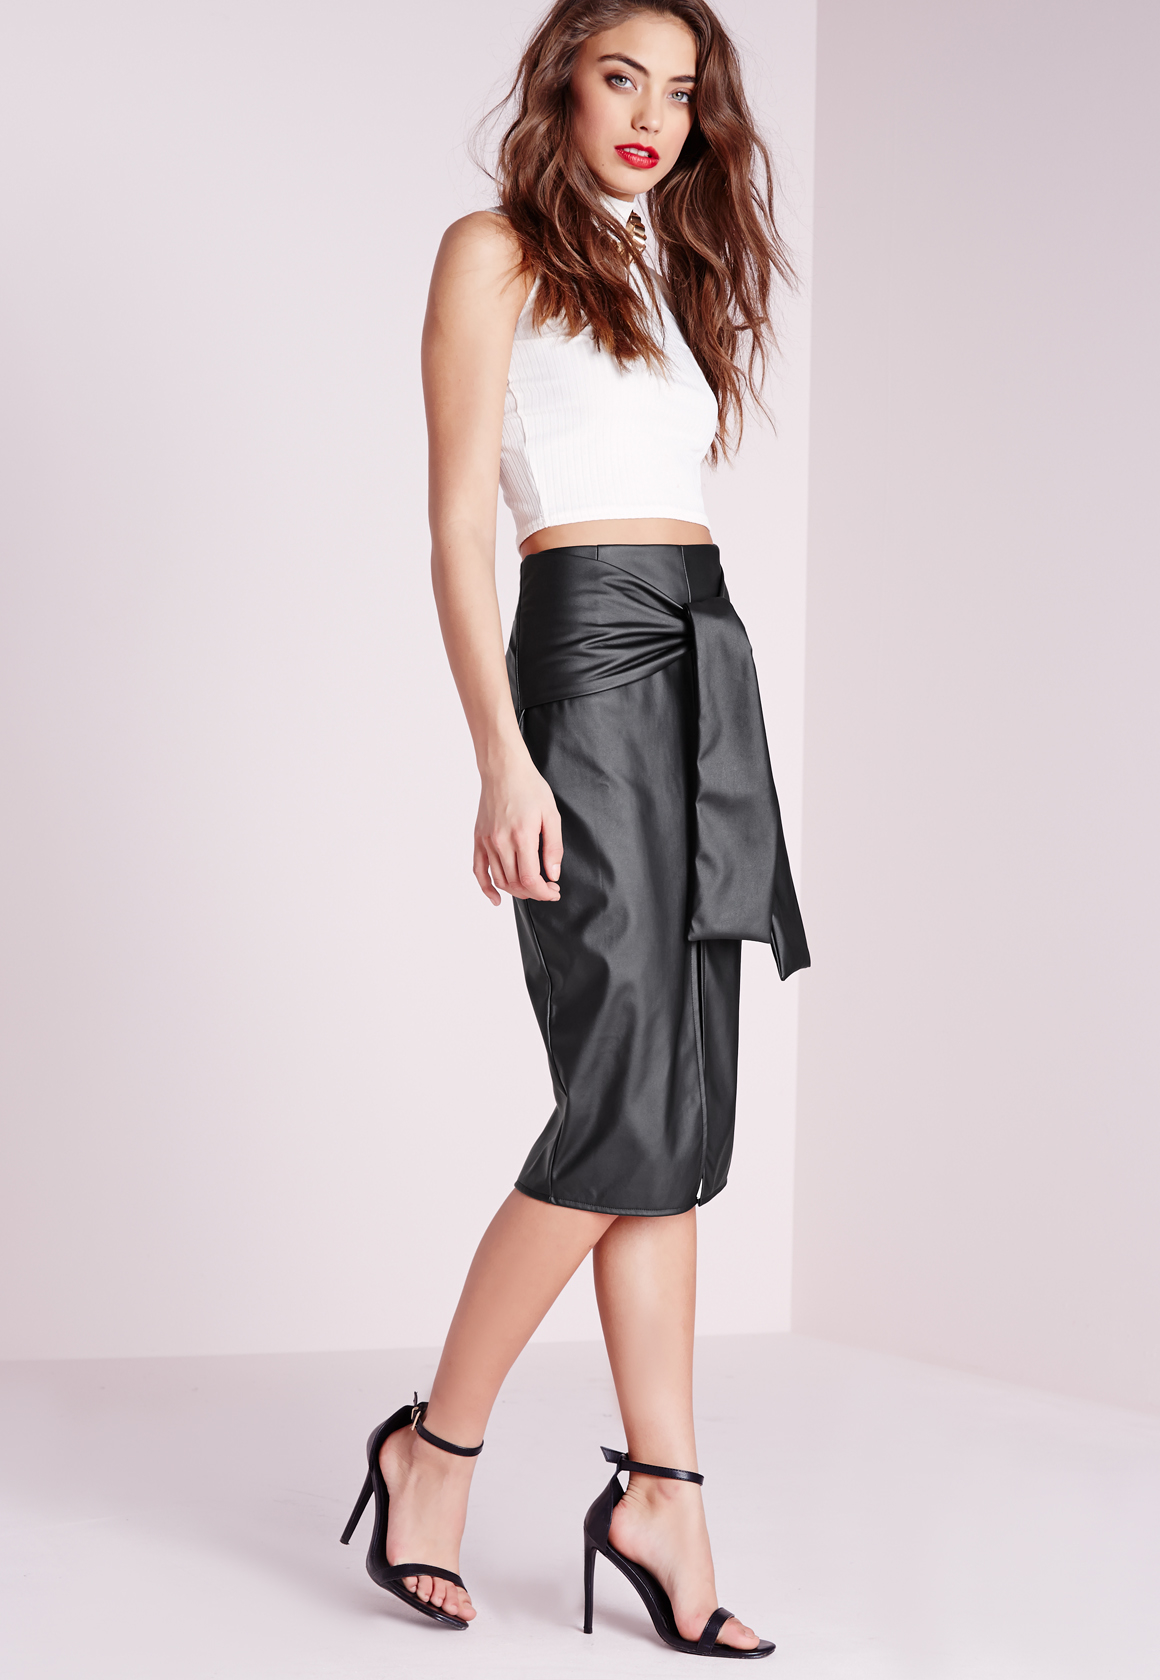 Missguided Tie Waist Faux Leather Midi Skirt Black in Black | Lyst